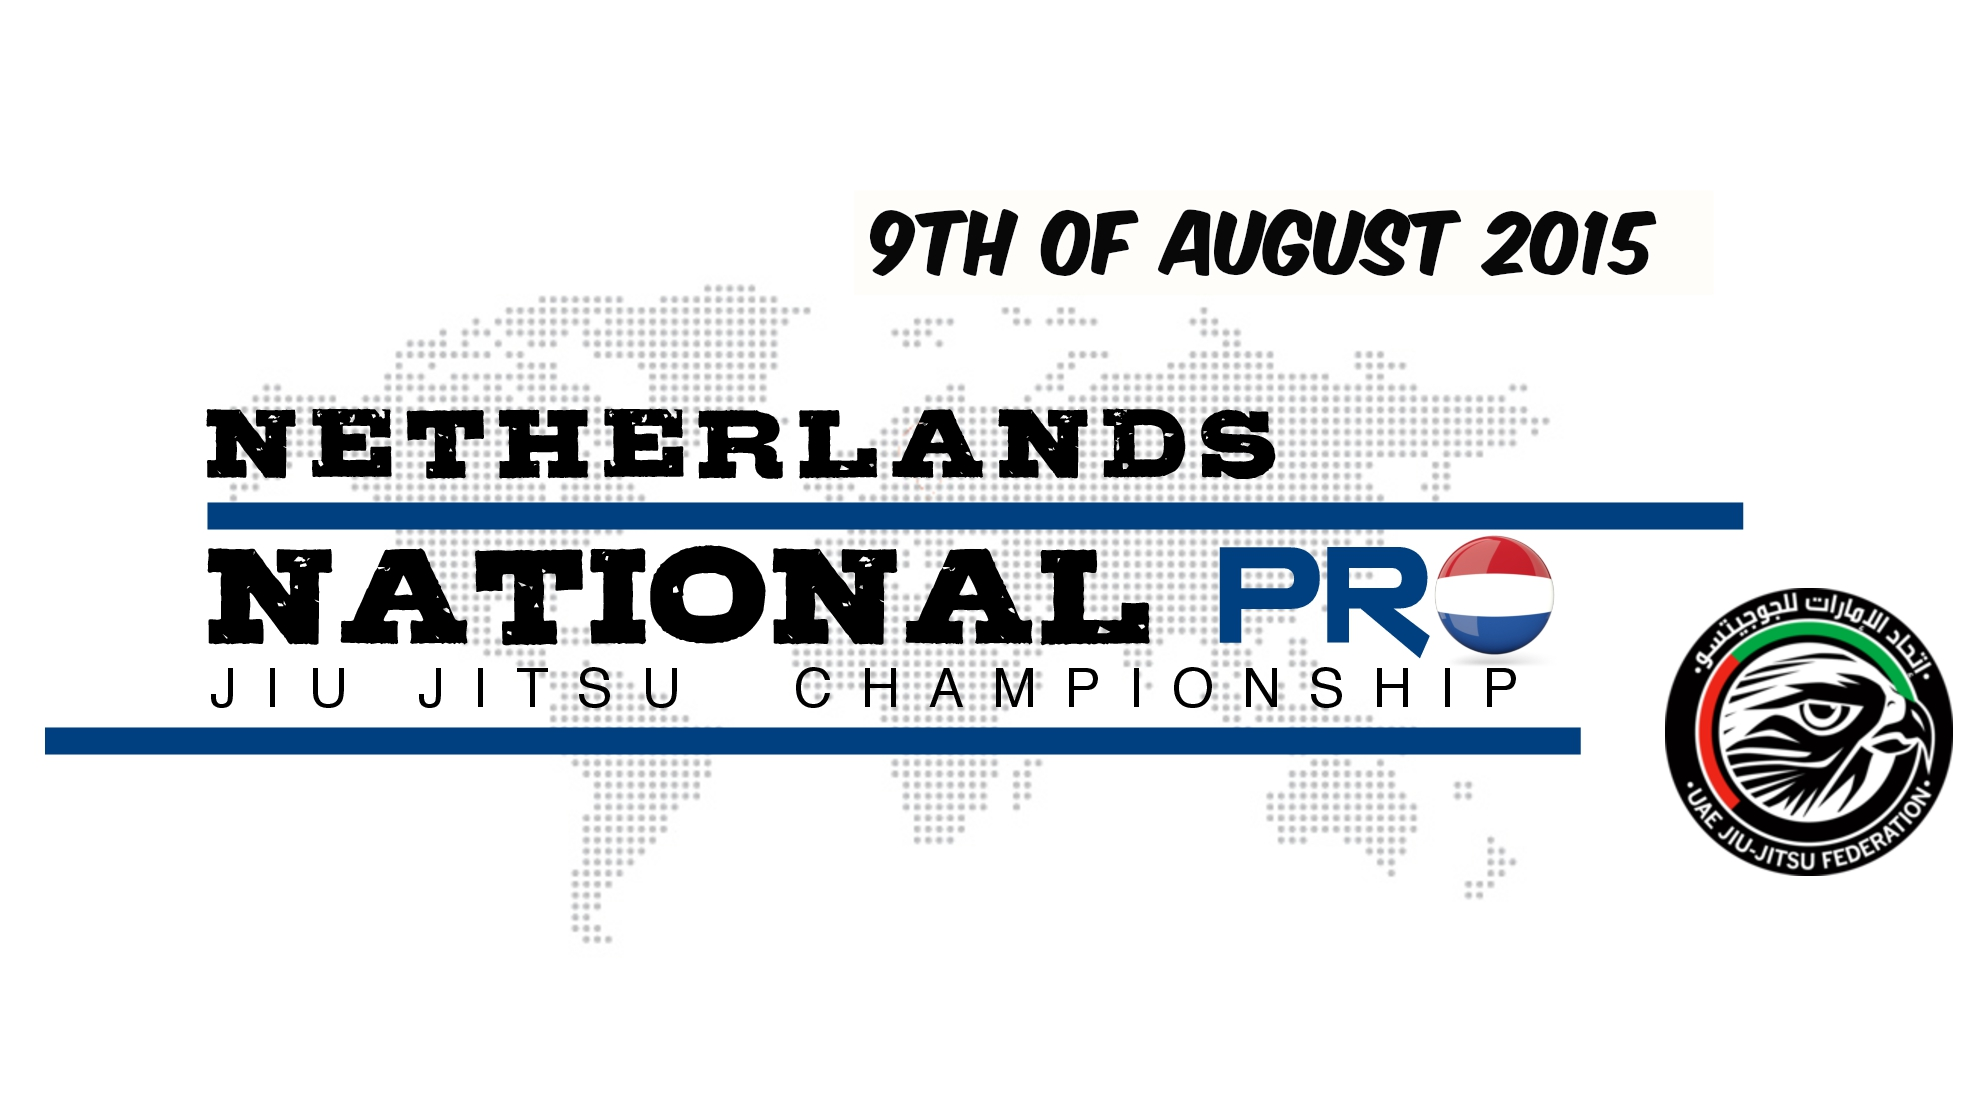 Netherlands National Pro Jiu-Jitsu Championship, Amsterdam 19th August, $80.000,00 in Prizes & Travel Packages